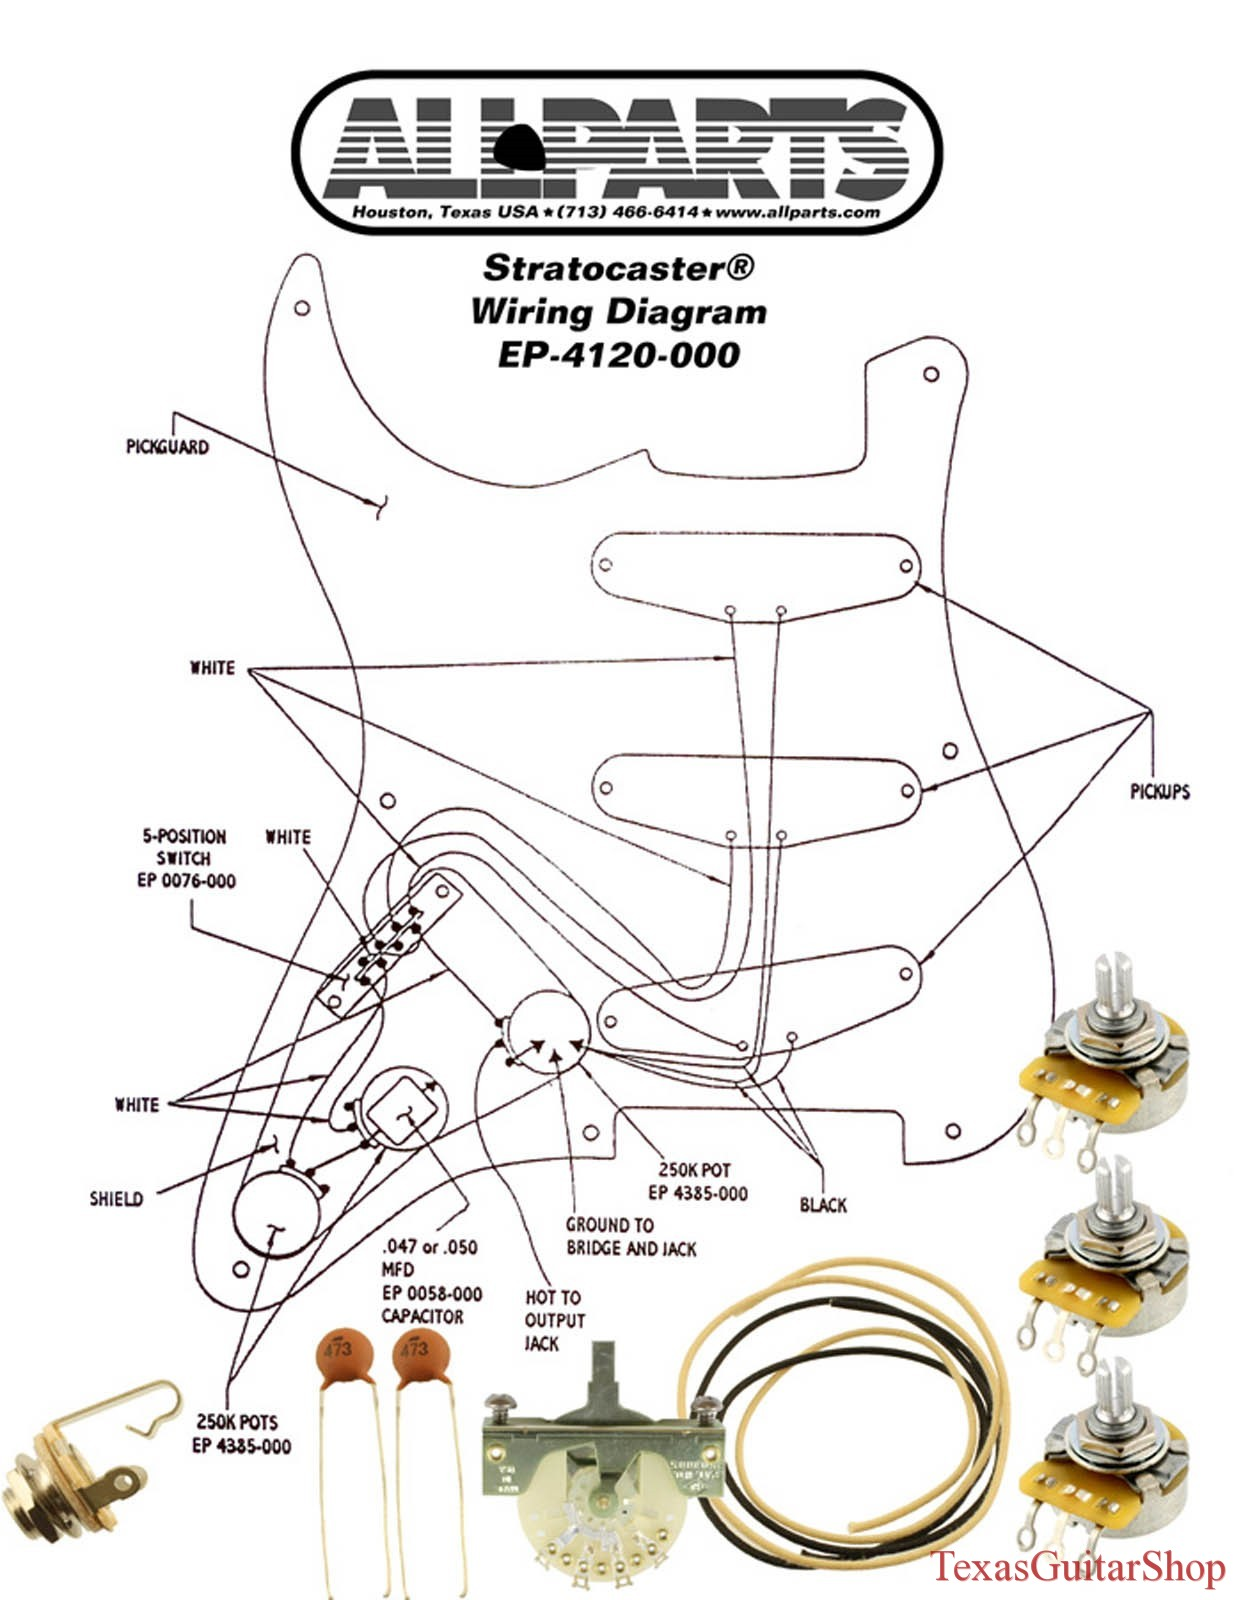 Enchanting Stratocaster Parts Diagram Motif - Wiring Diagram Ideas ...